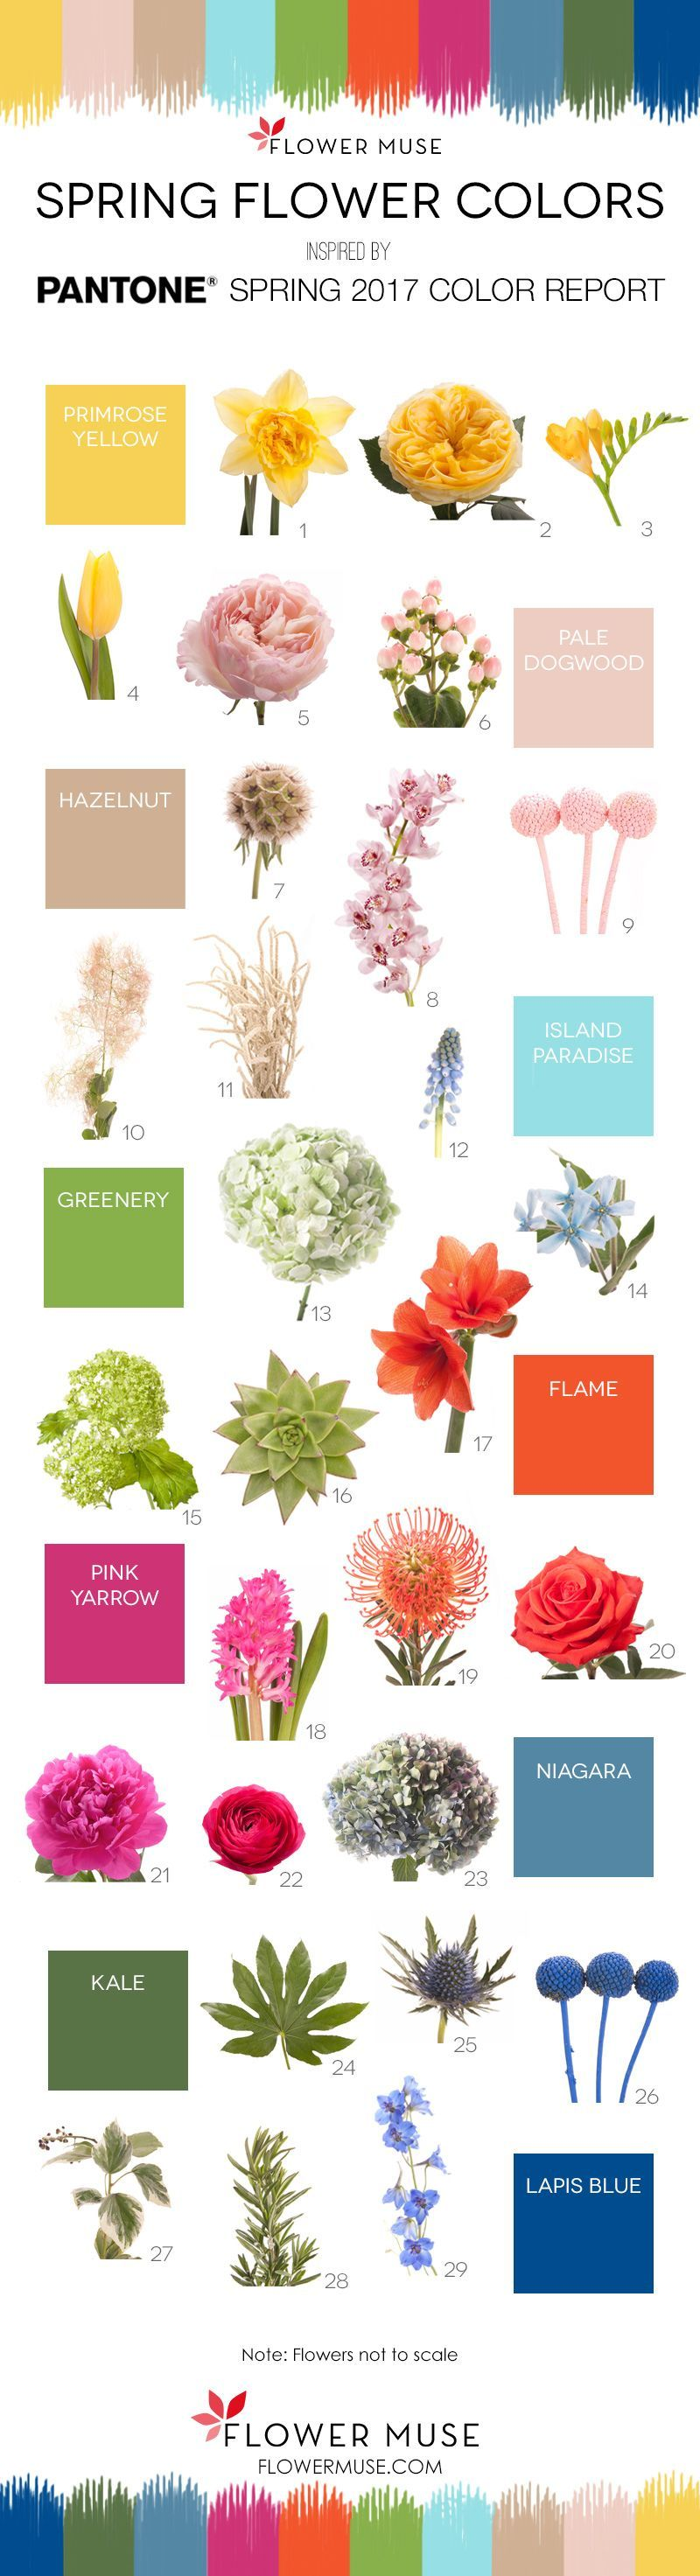 Learn All About Different Types Of Flowers From Roses And Lilies To